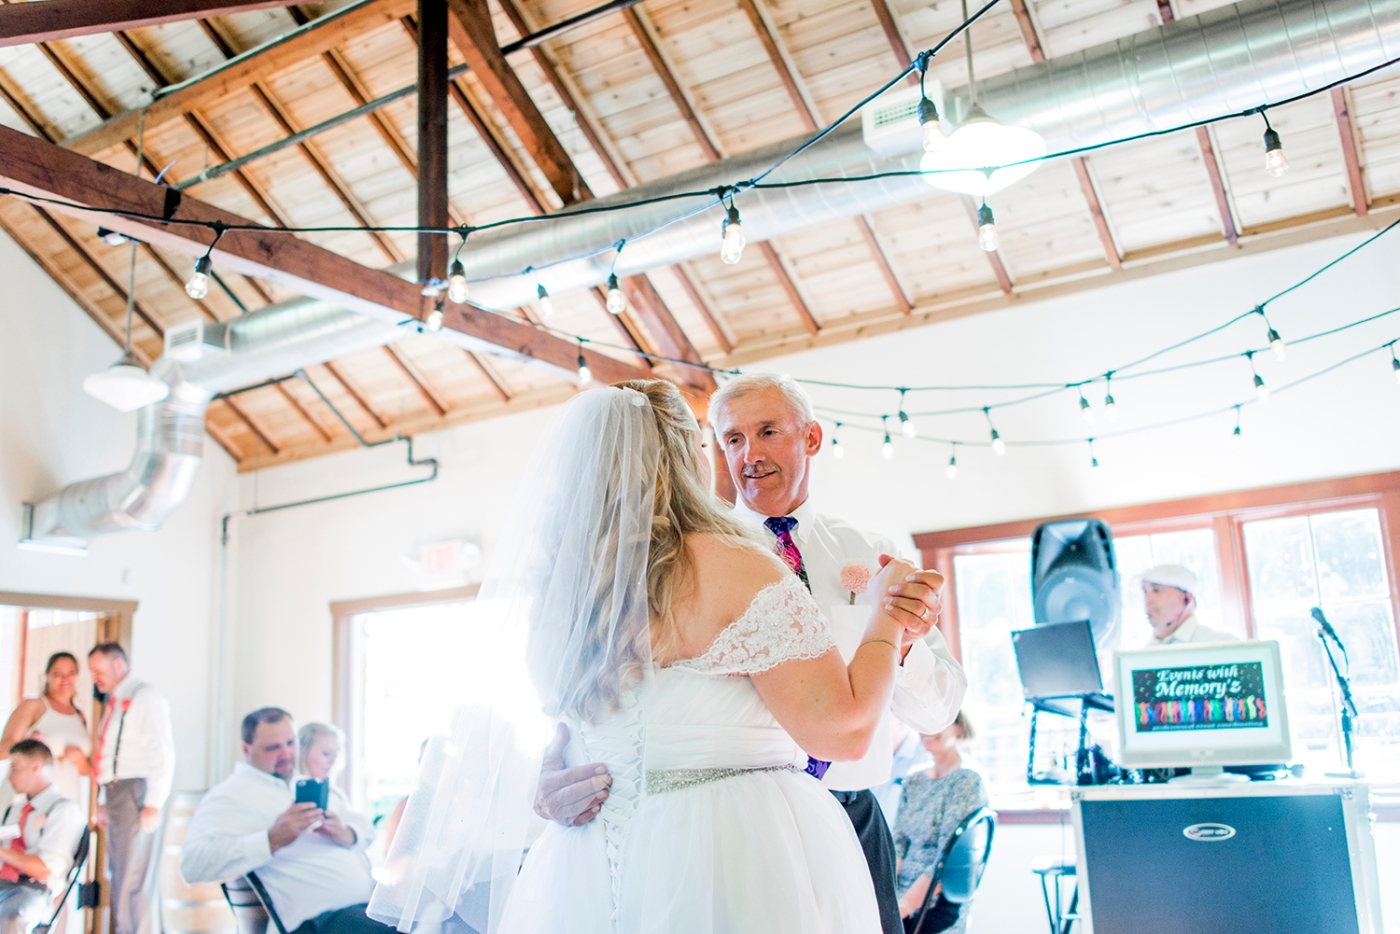 Jane_Speleers_Seattle_photography_Katie_and_Steve_2016_Des_Moines_Marina_Wedding_DSC_2022